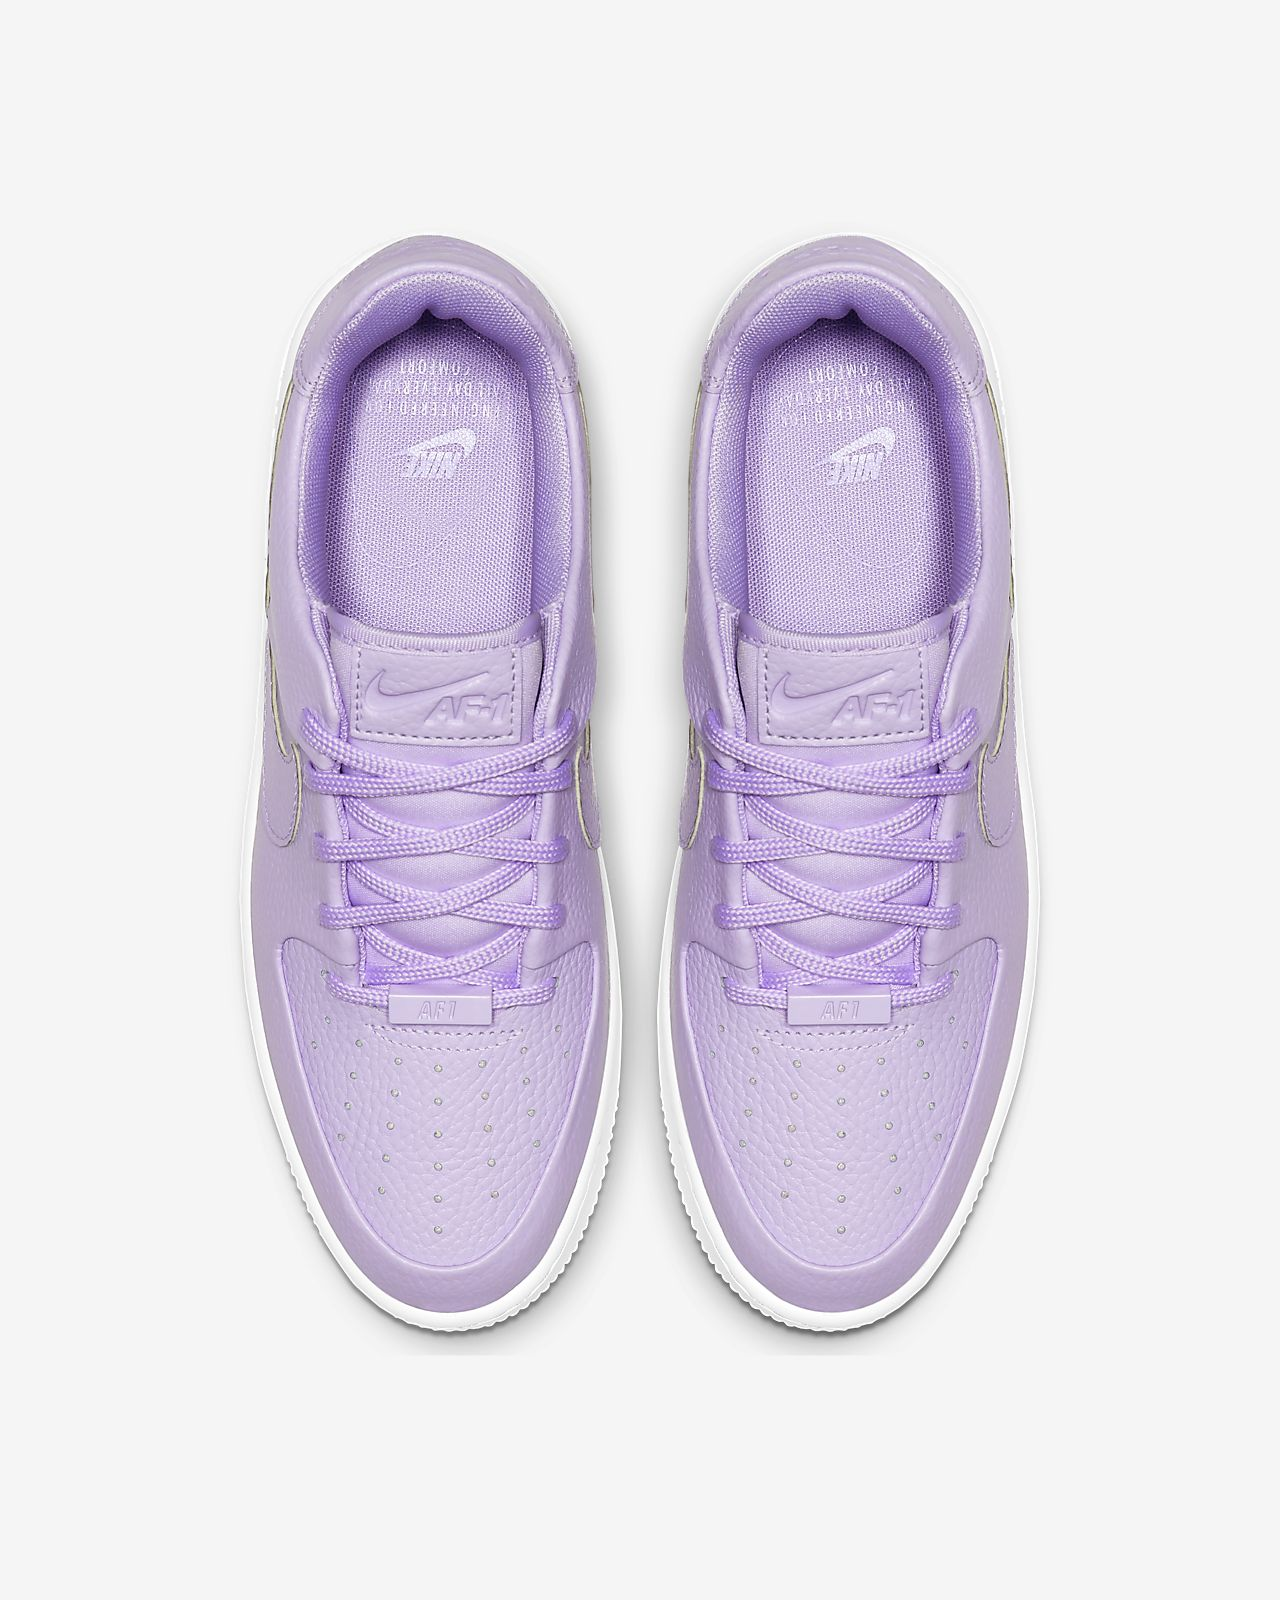 4f6a0e991e826 Nike Air Force 1 Sage Low Women s Shoe. Nike.com AU